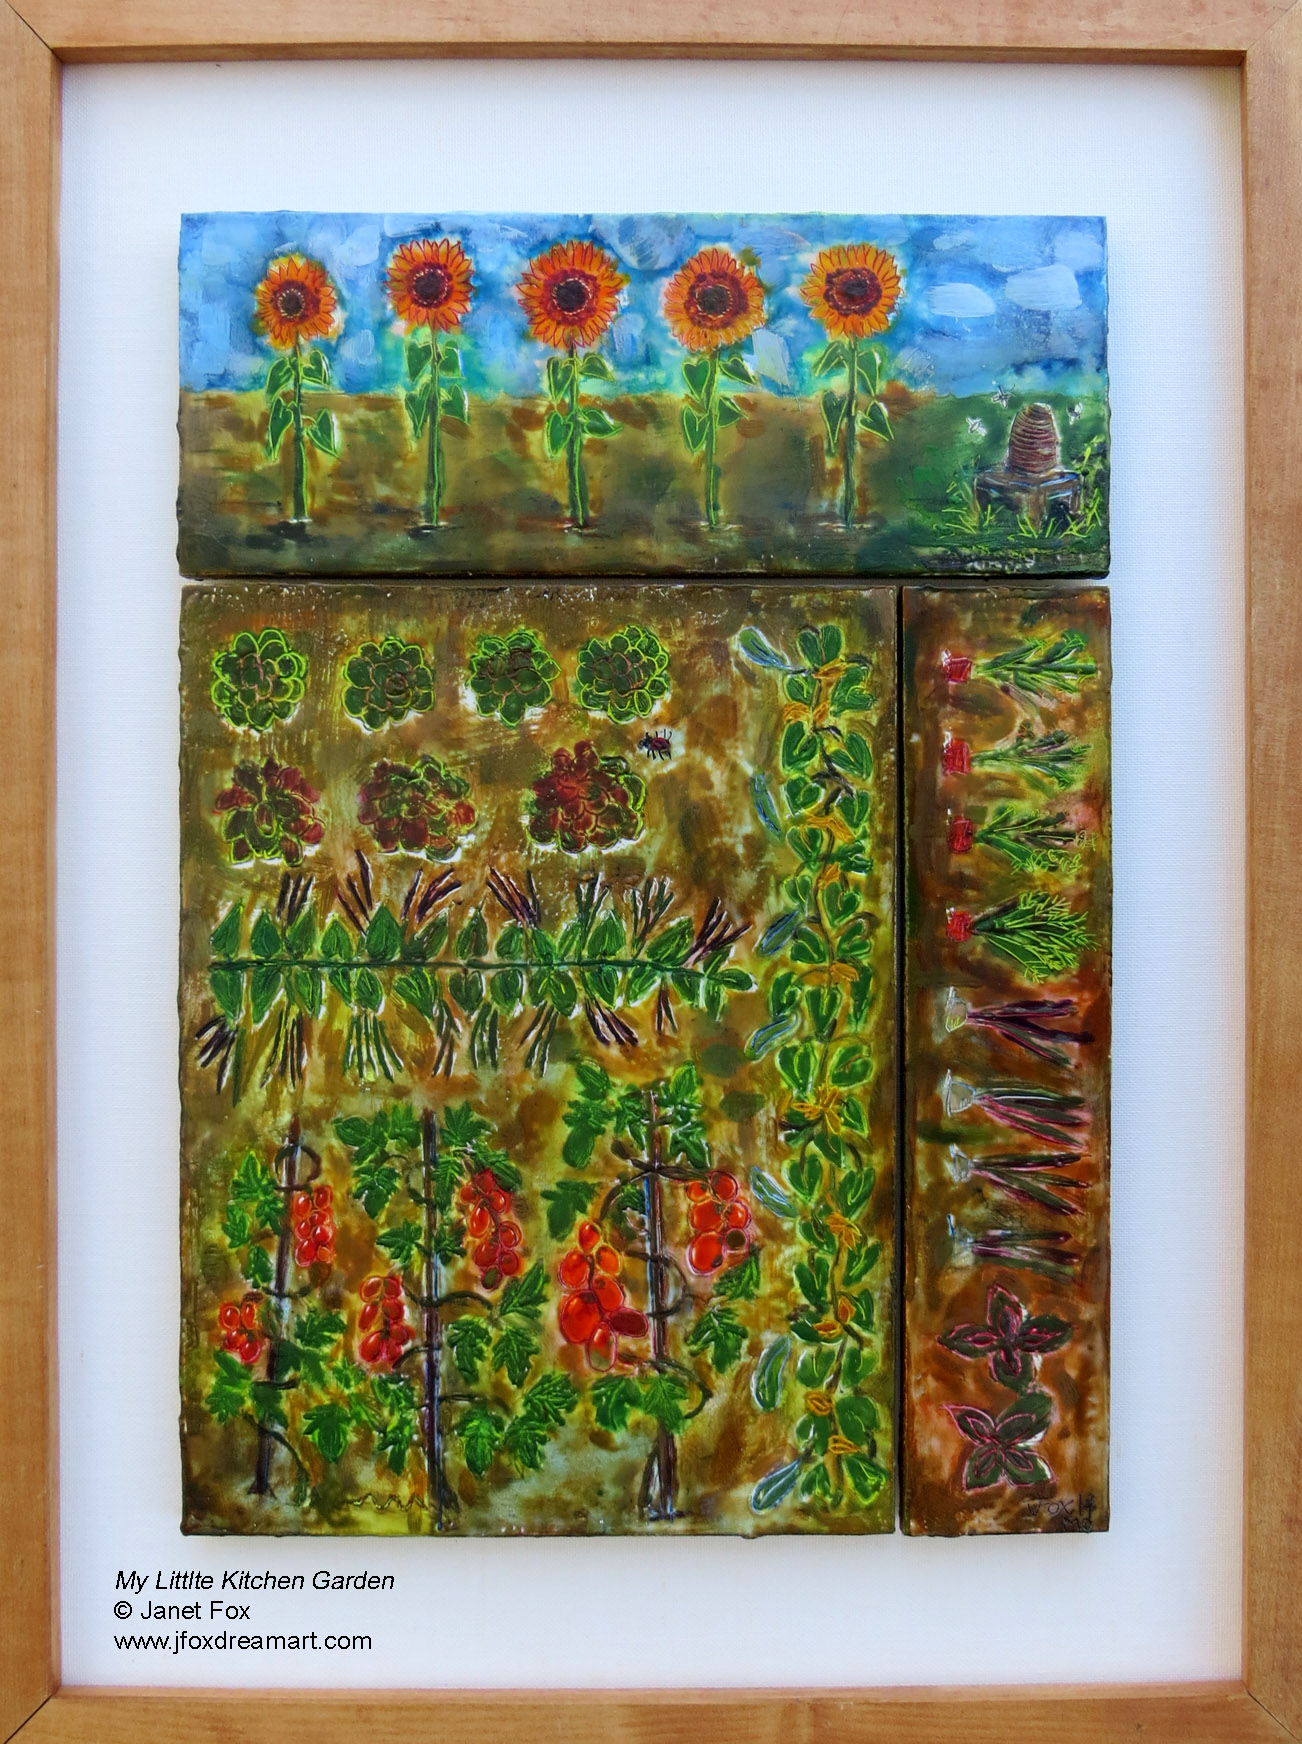 """Image of an encaustic painting by Janet Fox titled """"My Little Kitchen Garden."""""""